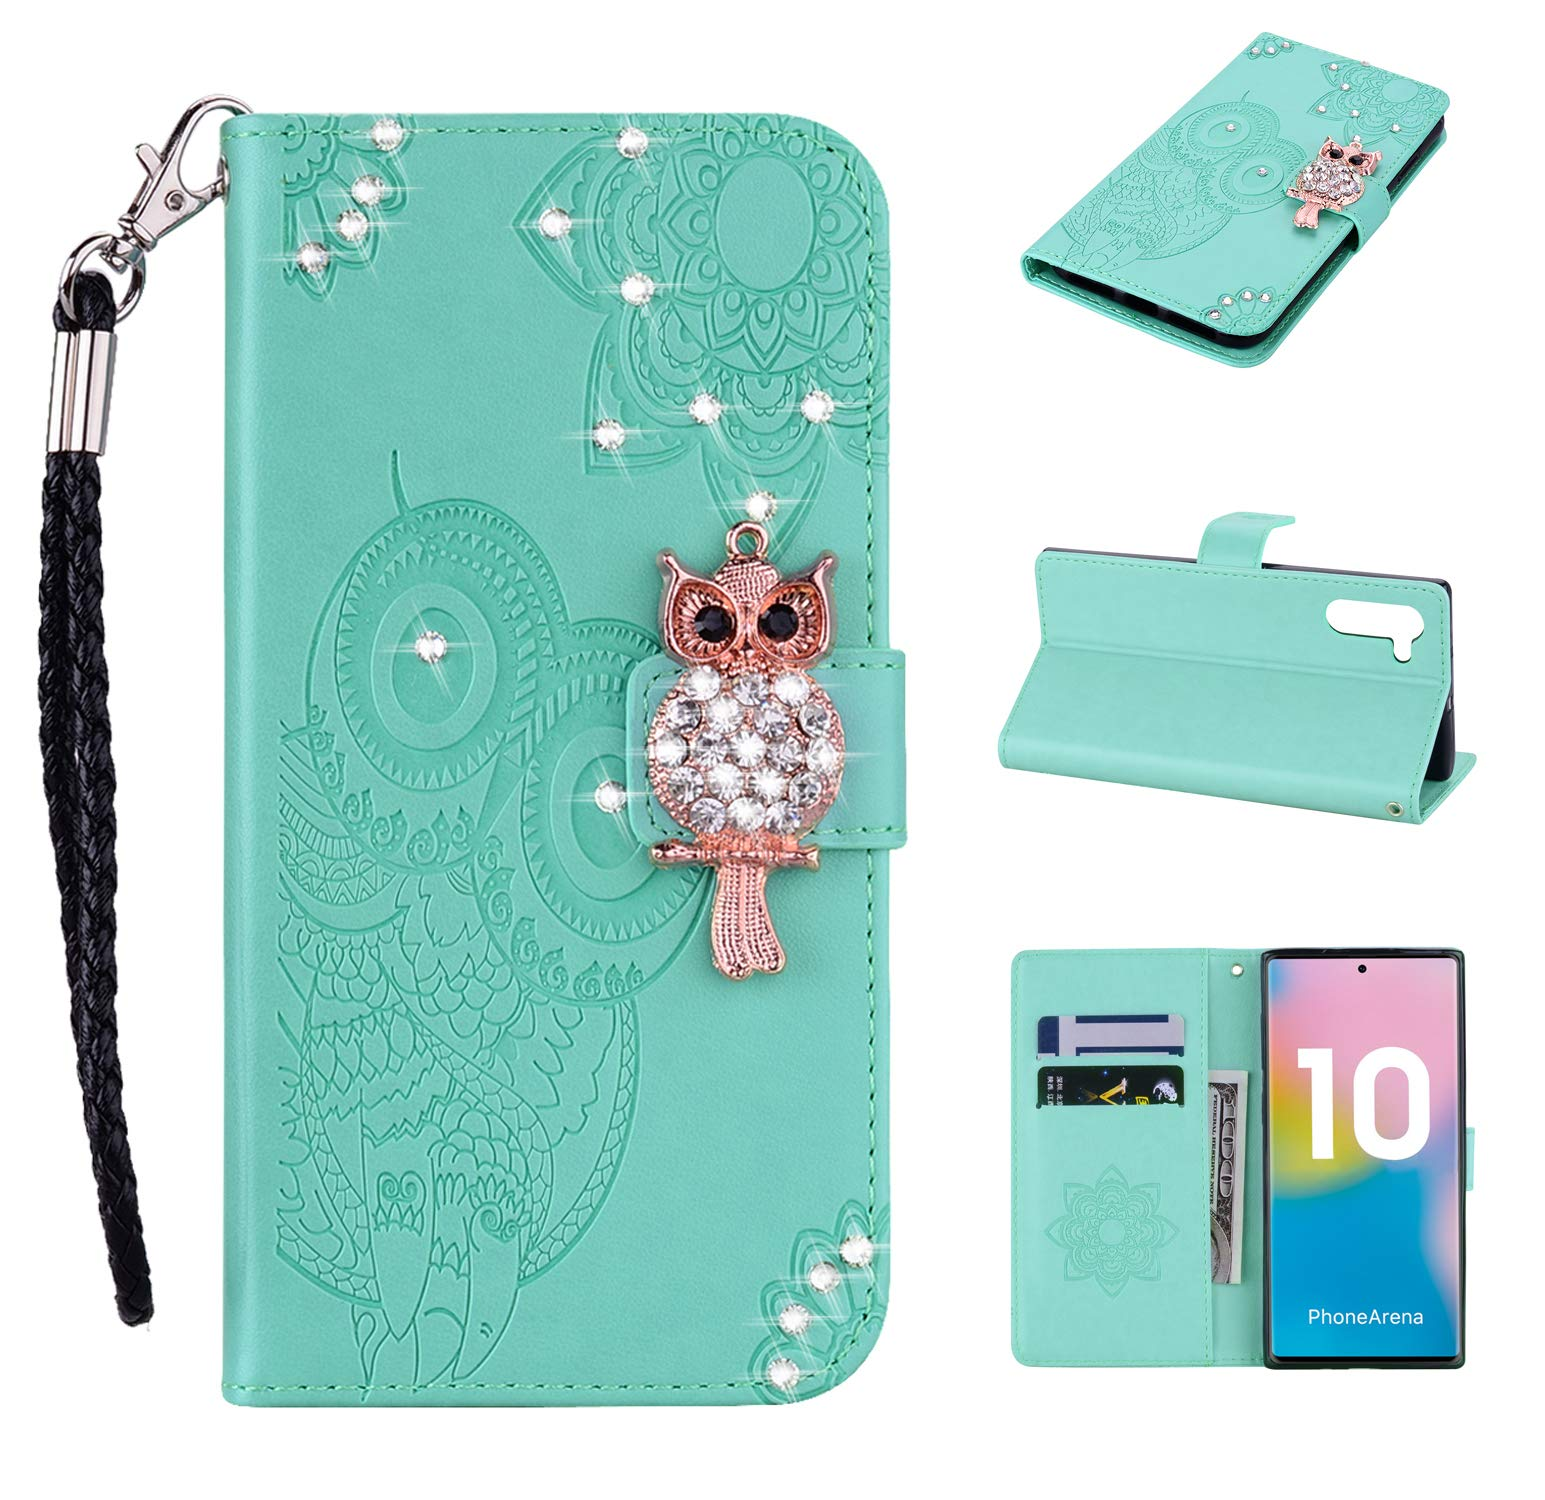 Amocase Wallet Case with 2 in 1 Stylus for Samsung Galaxy Note 10,3D Bling Gems Owl Magnetic Mandala Embossing Premium Strap PU Leather Card Slot Stand Case for Samsung Galaxy Note 10 - Mint Green